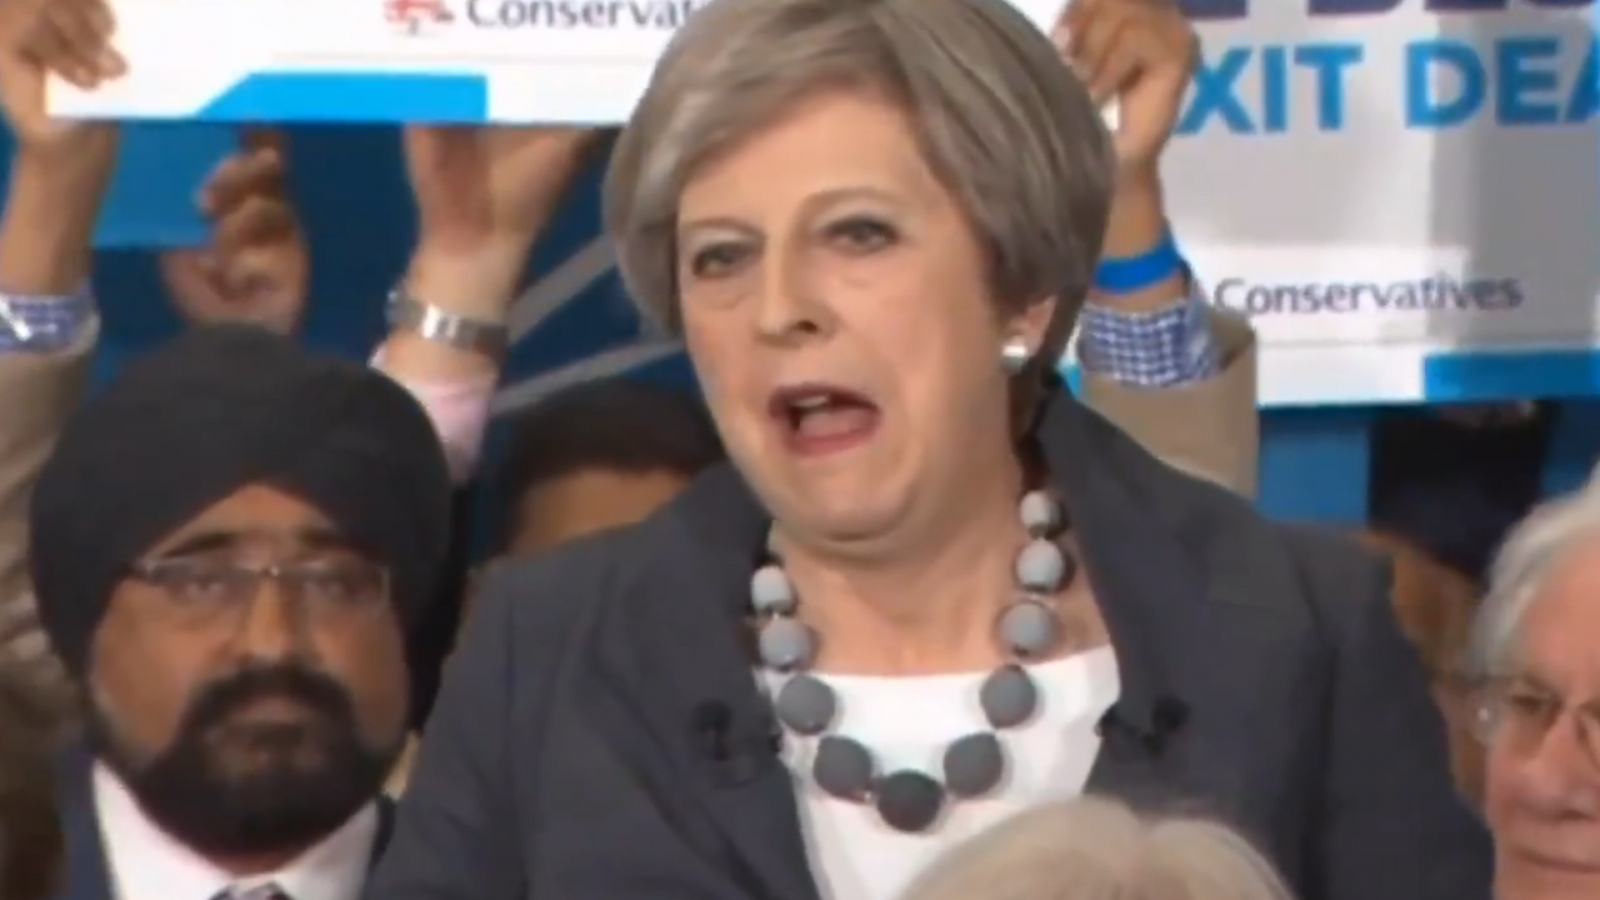 theresa-may-vows-to-change-human-rights-laws-to-fight-terrorism